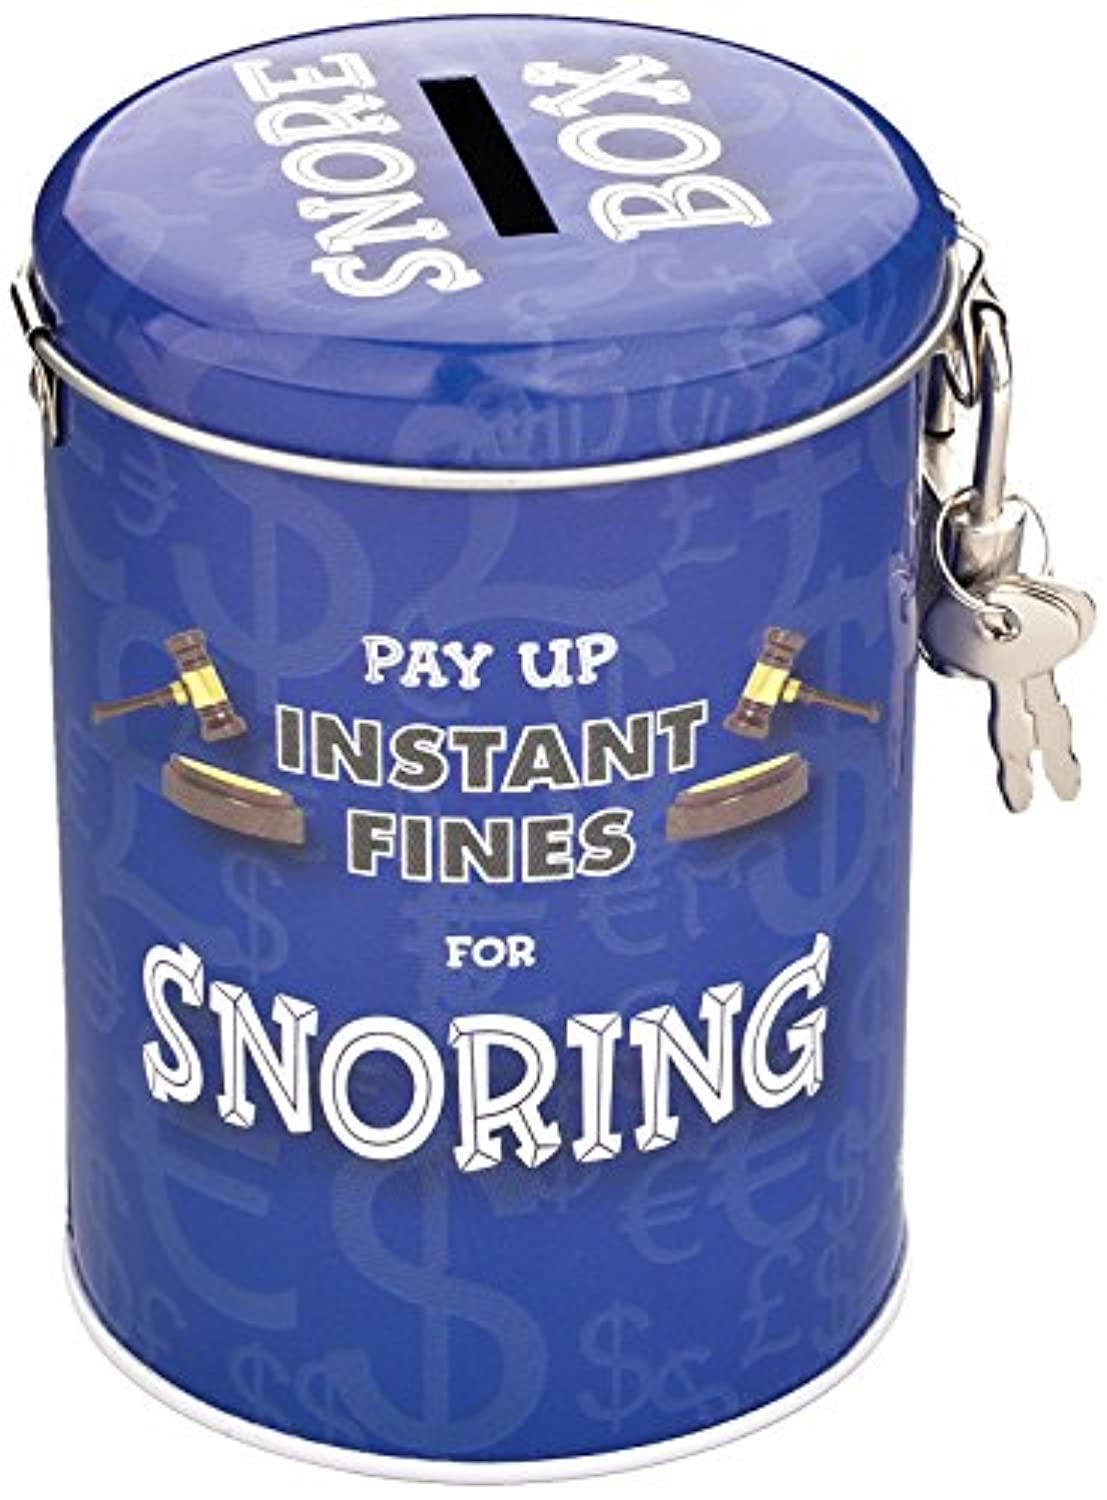 Boxer Gifts Instant Fines Pay Up Tin, Snoring